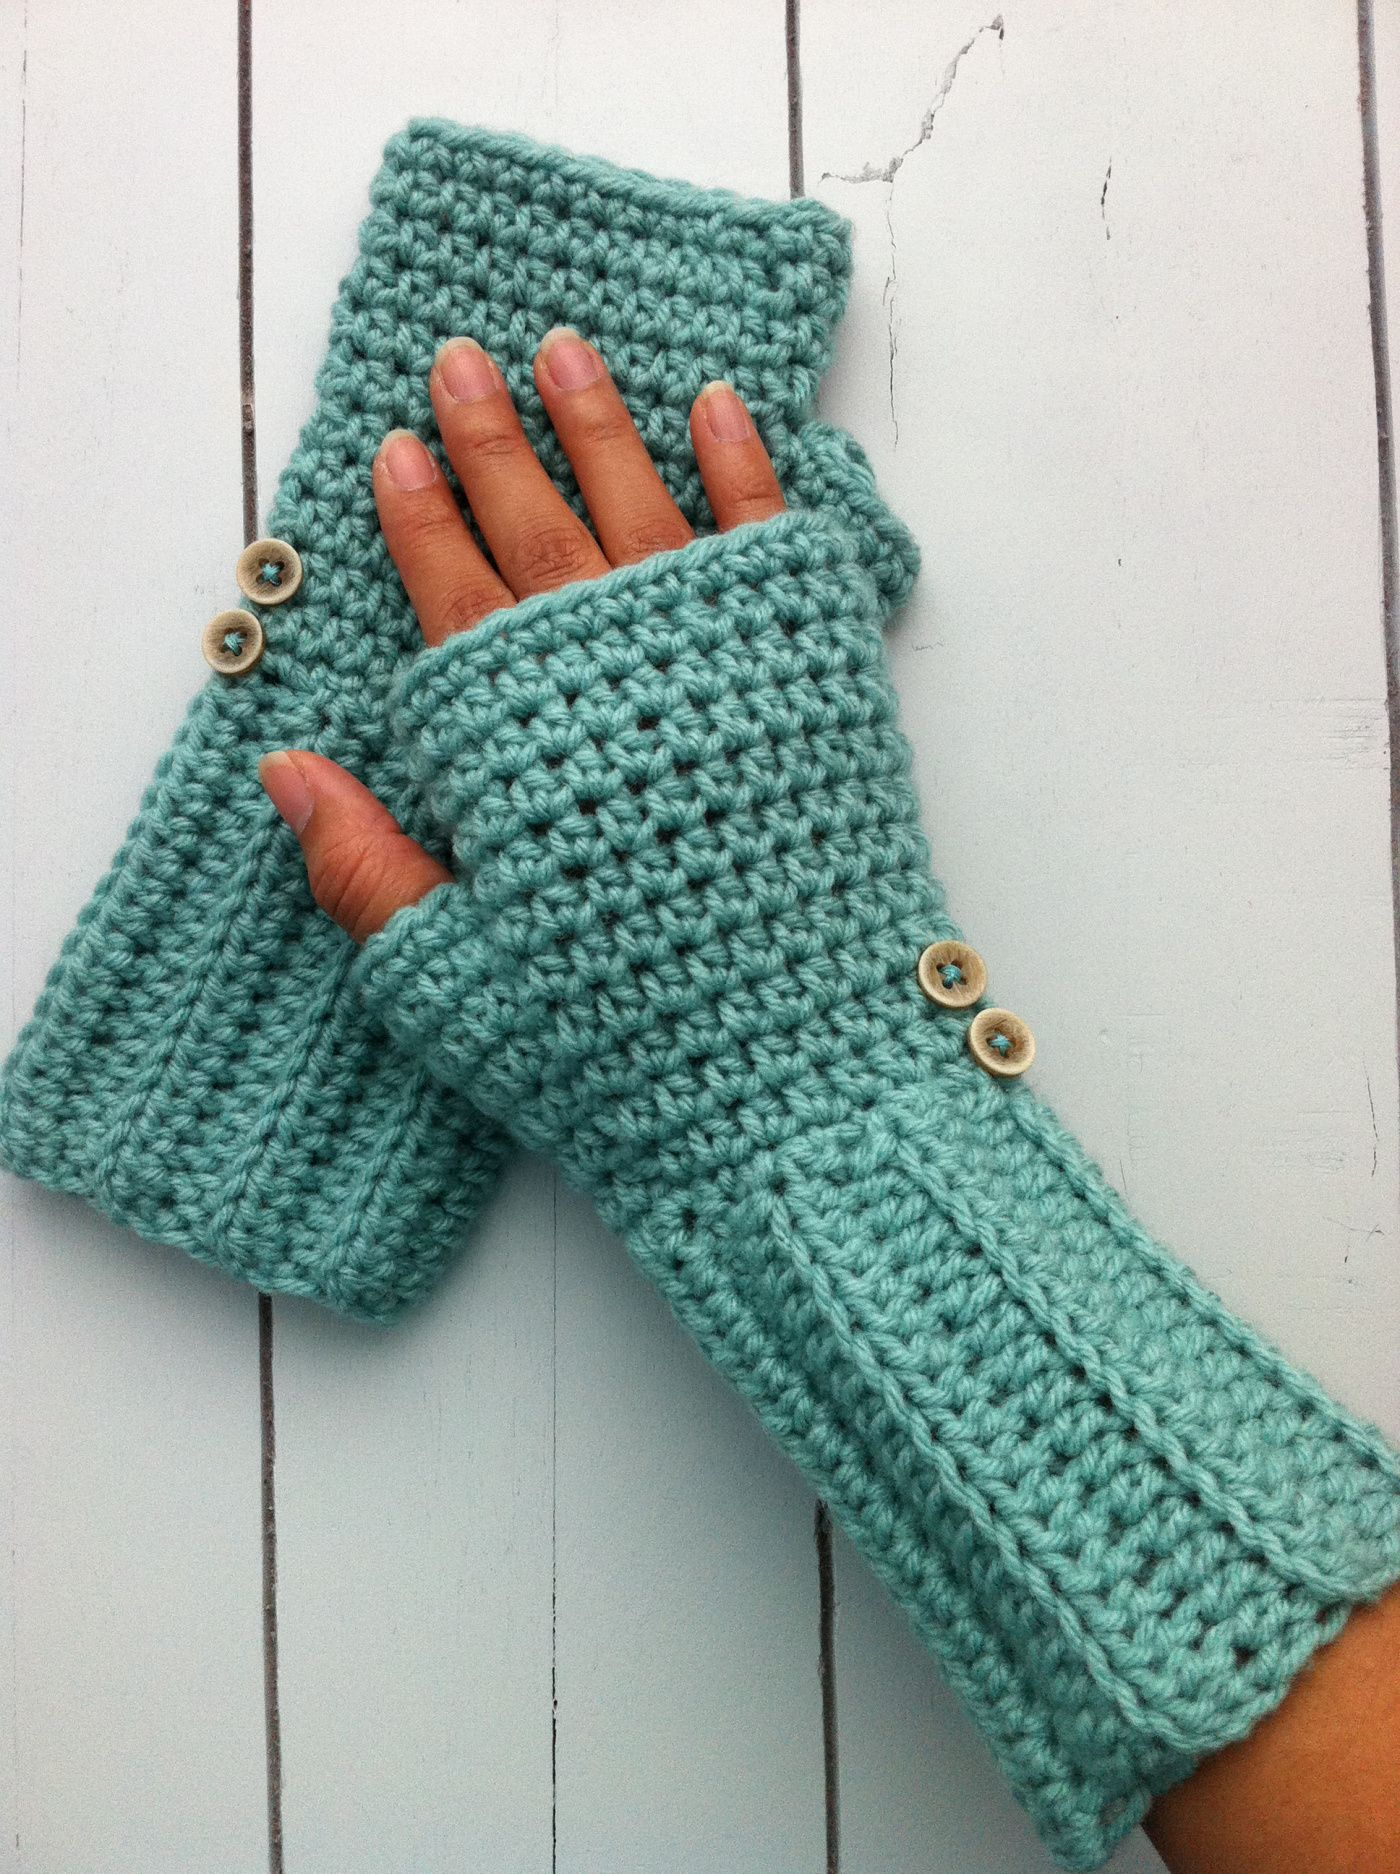 Crochet handwarmer chucksforchancho crochet pinterest would love this for when im working and cant wear gloves cant work camera dials with gloves on crochet fingerless gloves no pattern but looks very bankloansurffo Choice Image